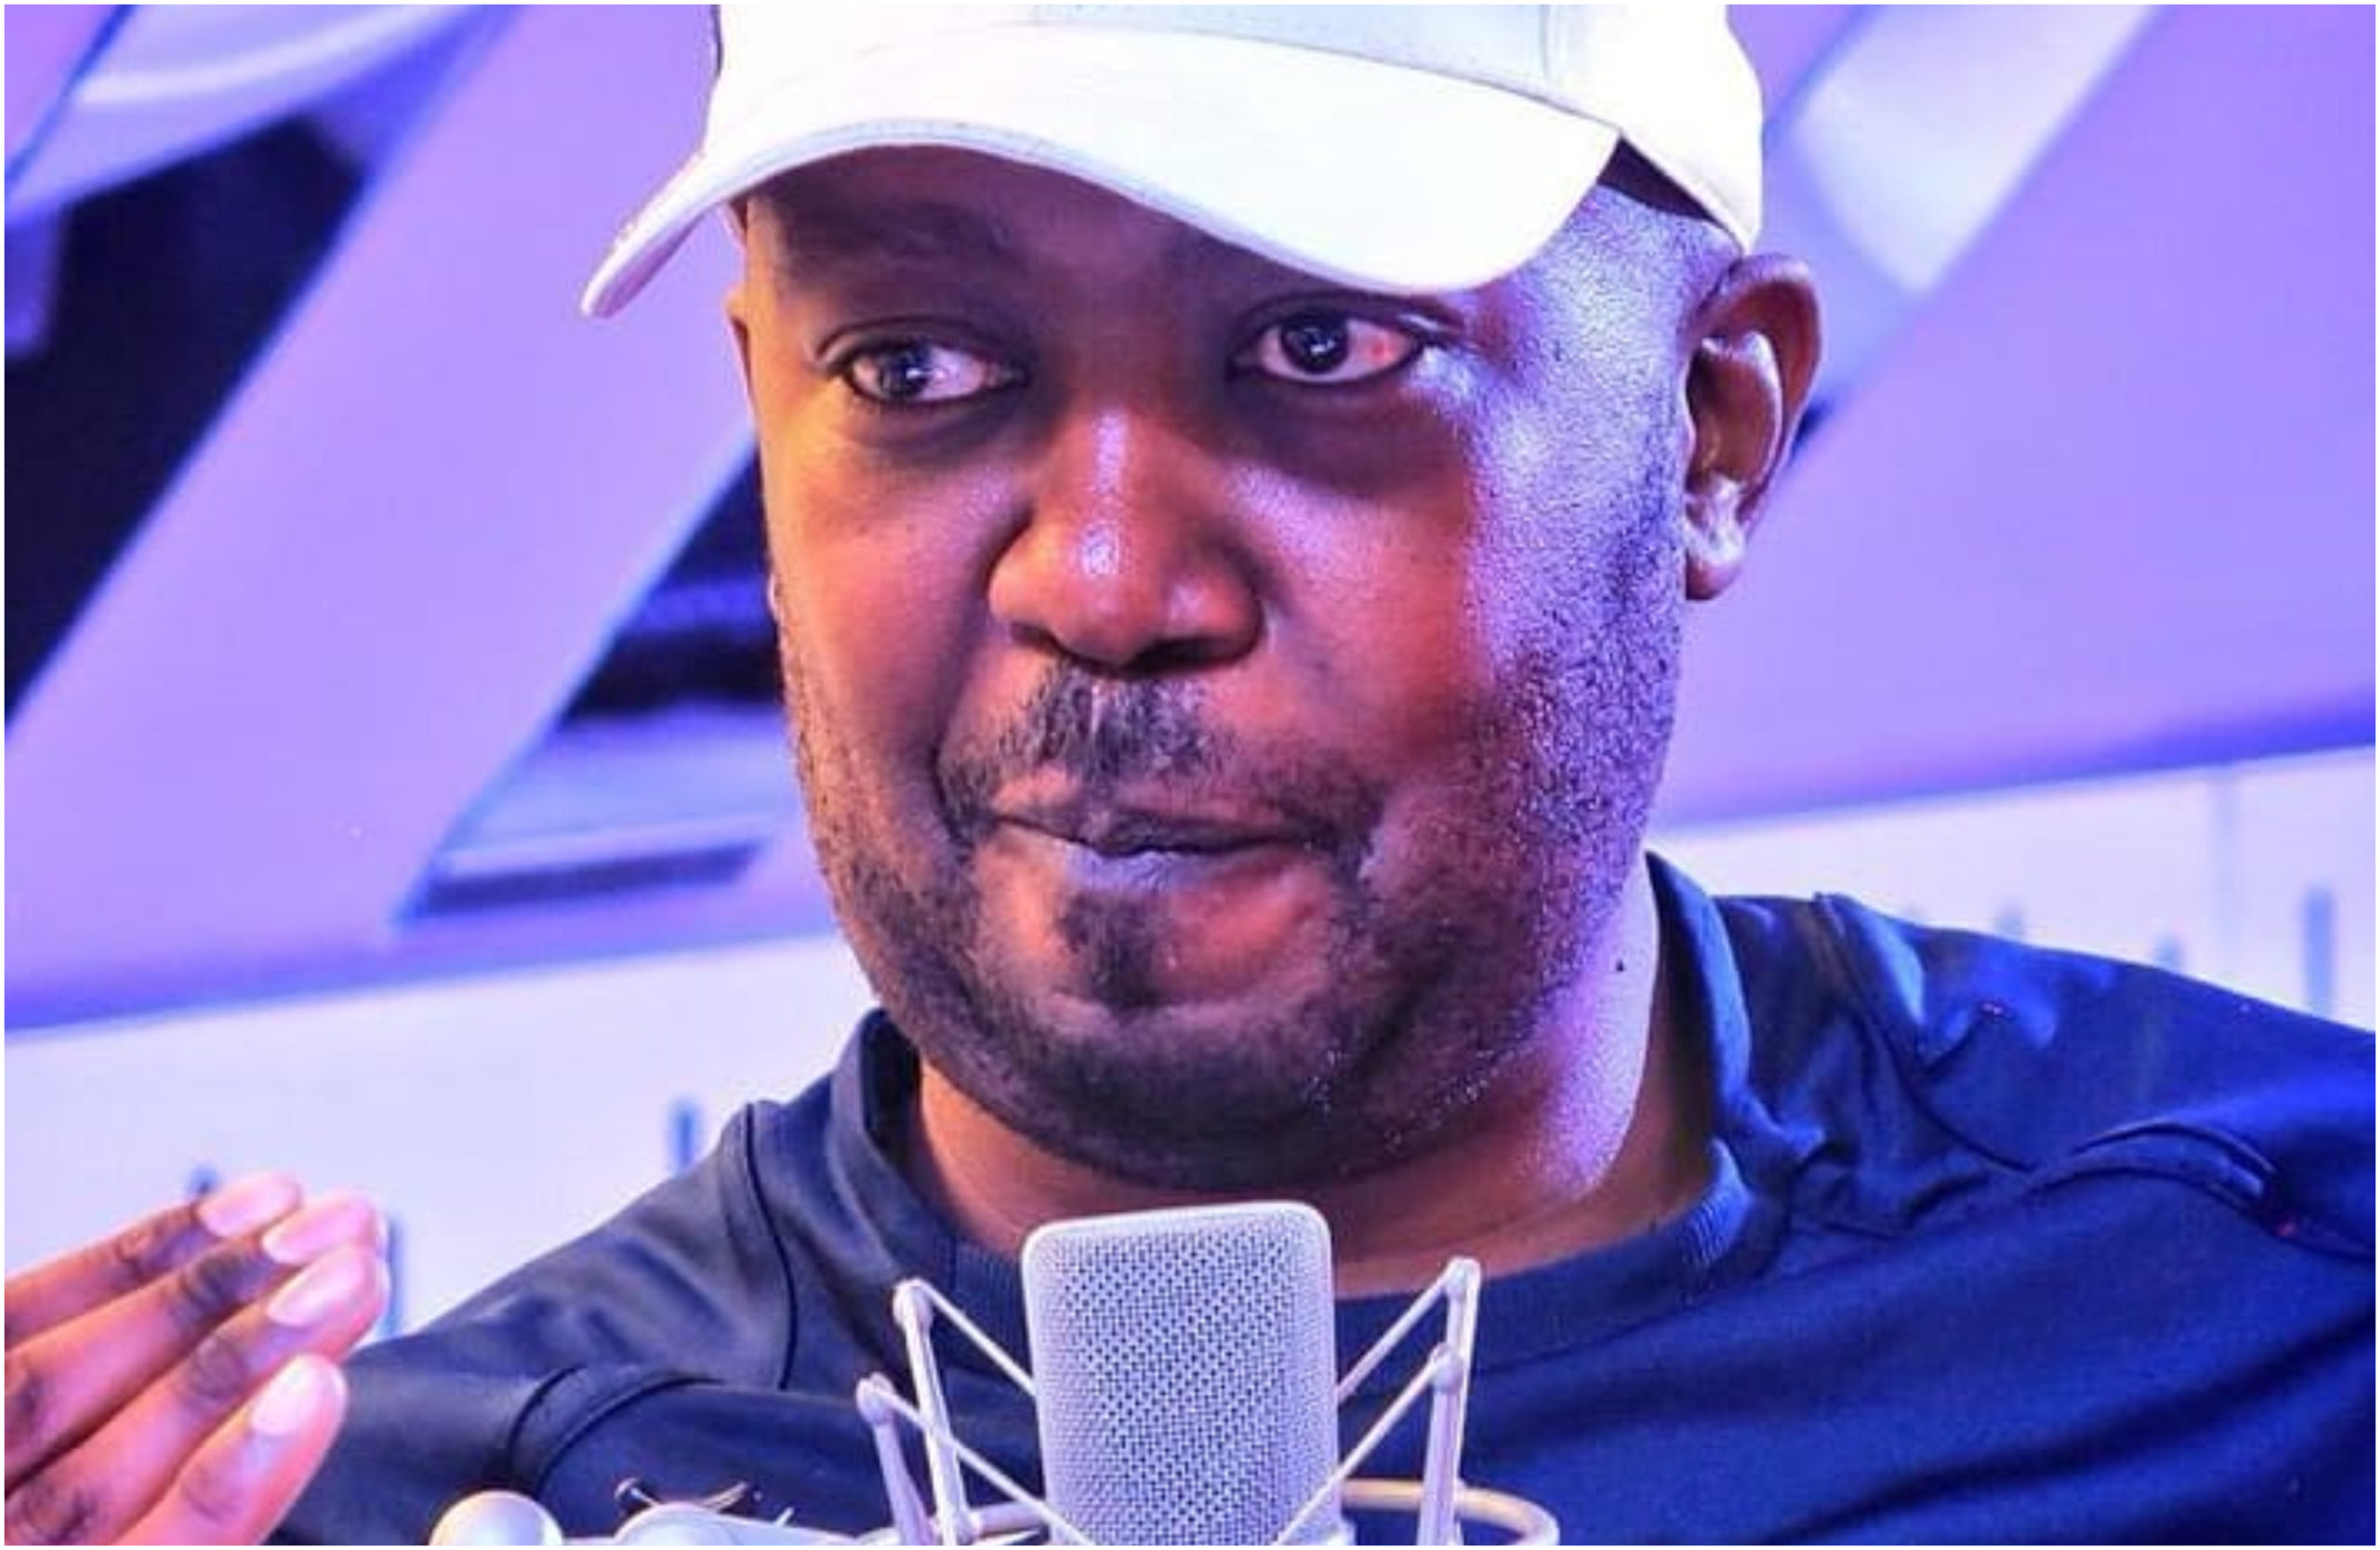 A look inside Andrew Kibe's newly unveiled station 'Rogue Radio' (Video)